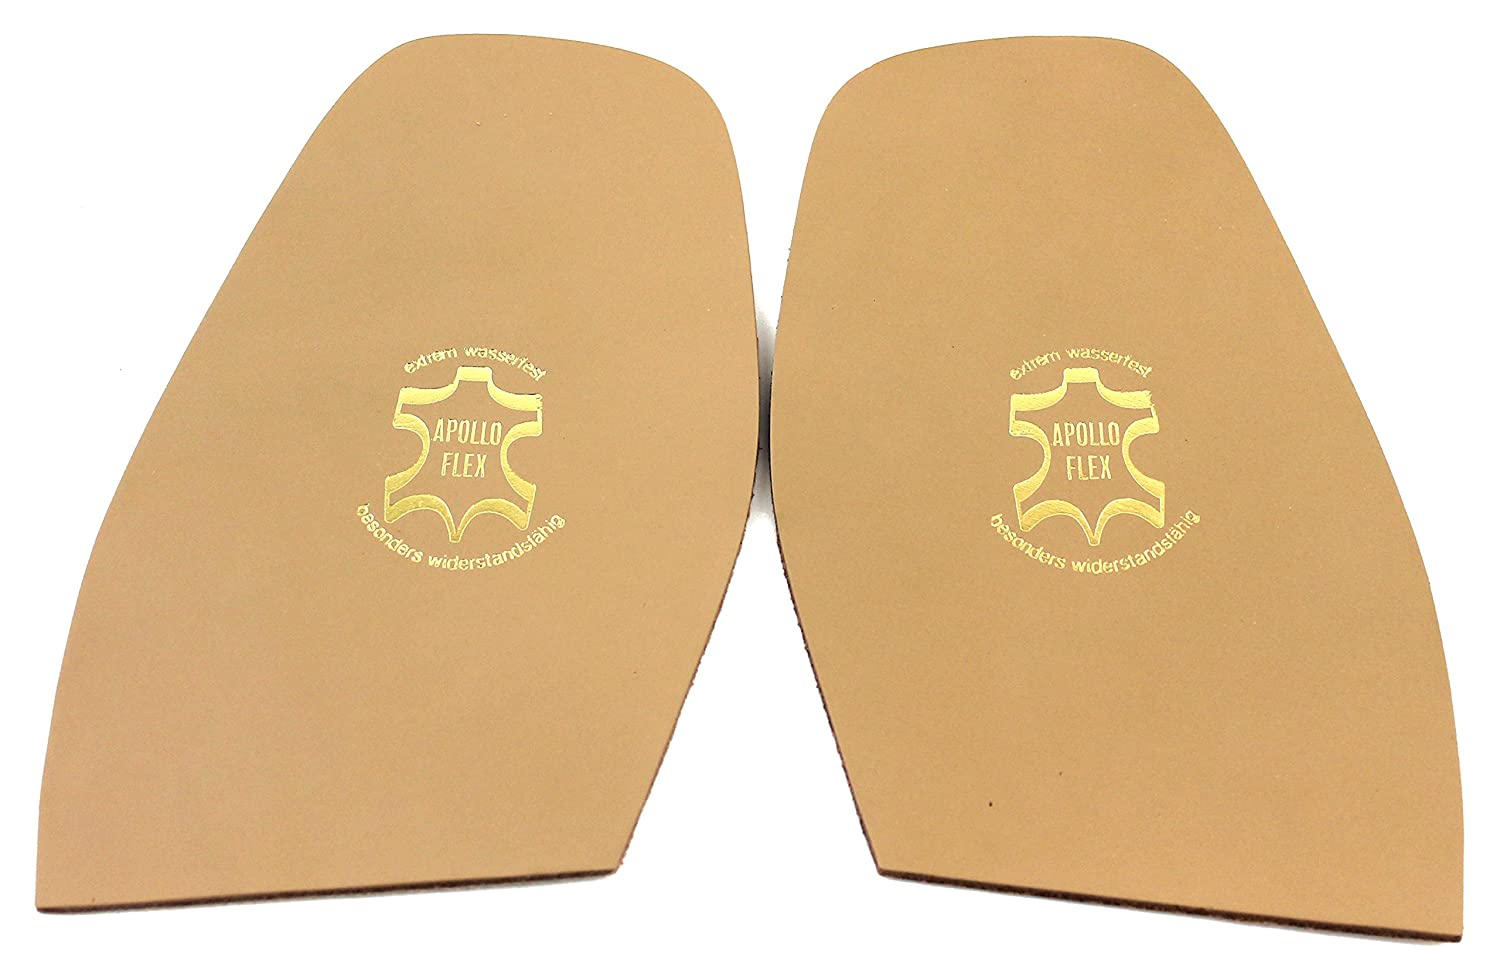 Ladies: 148 x 93 mm Leather Half Soles 1 pair for DIY Shoe Repairs High quality made in Germany!